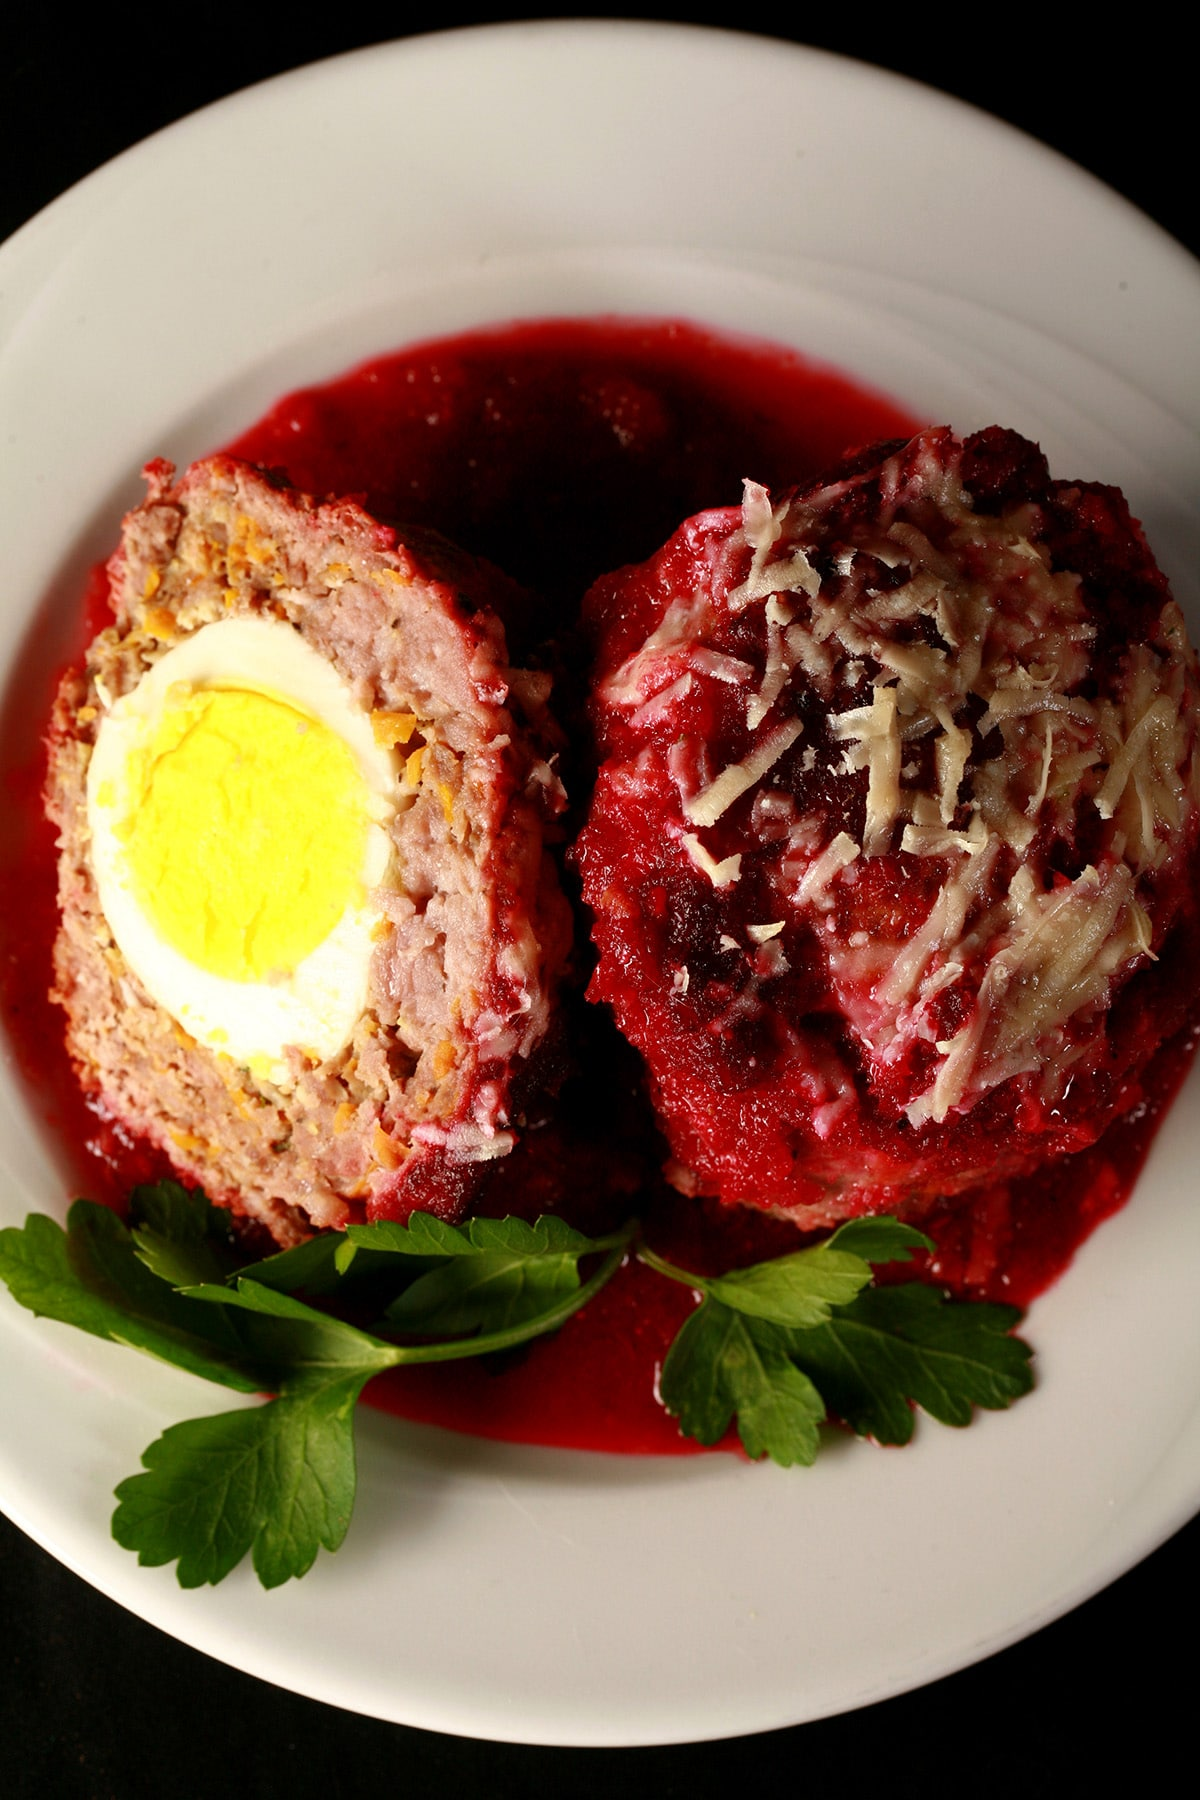 An individual scotch egg meatloaf on a white plate, with a half meatloaf next to it. The half serving shows the hard boiled egg surrounded by meatloaf.